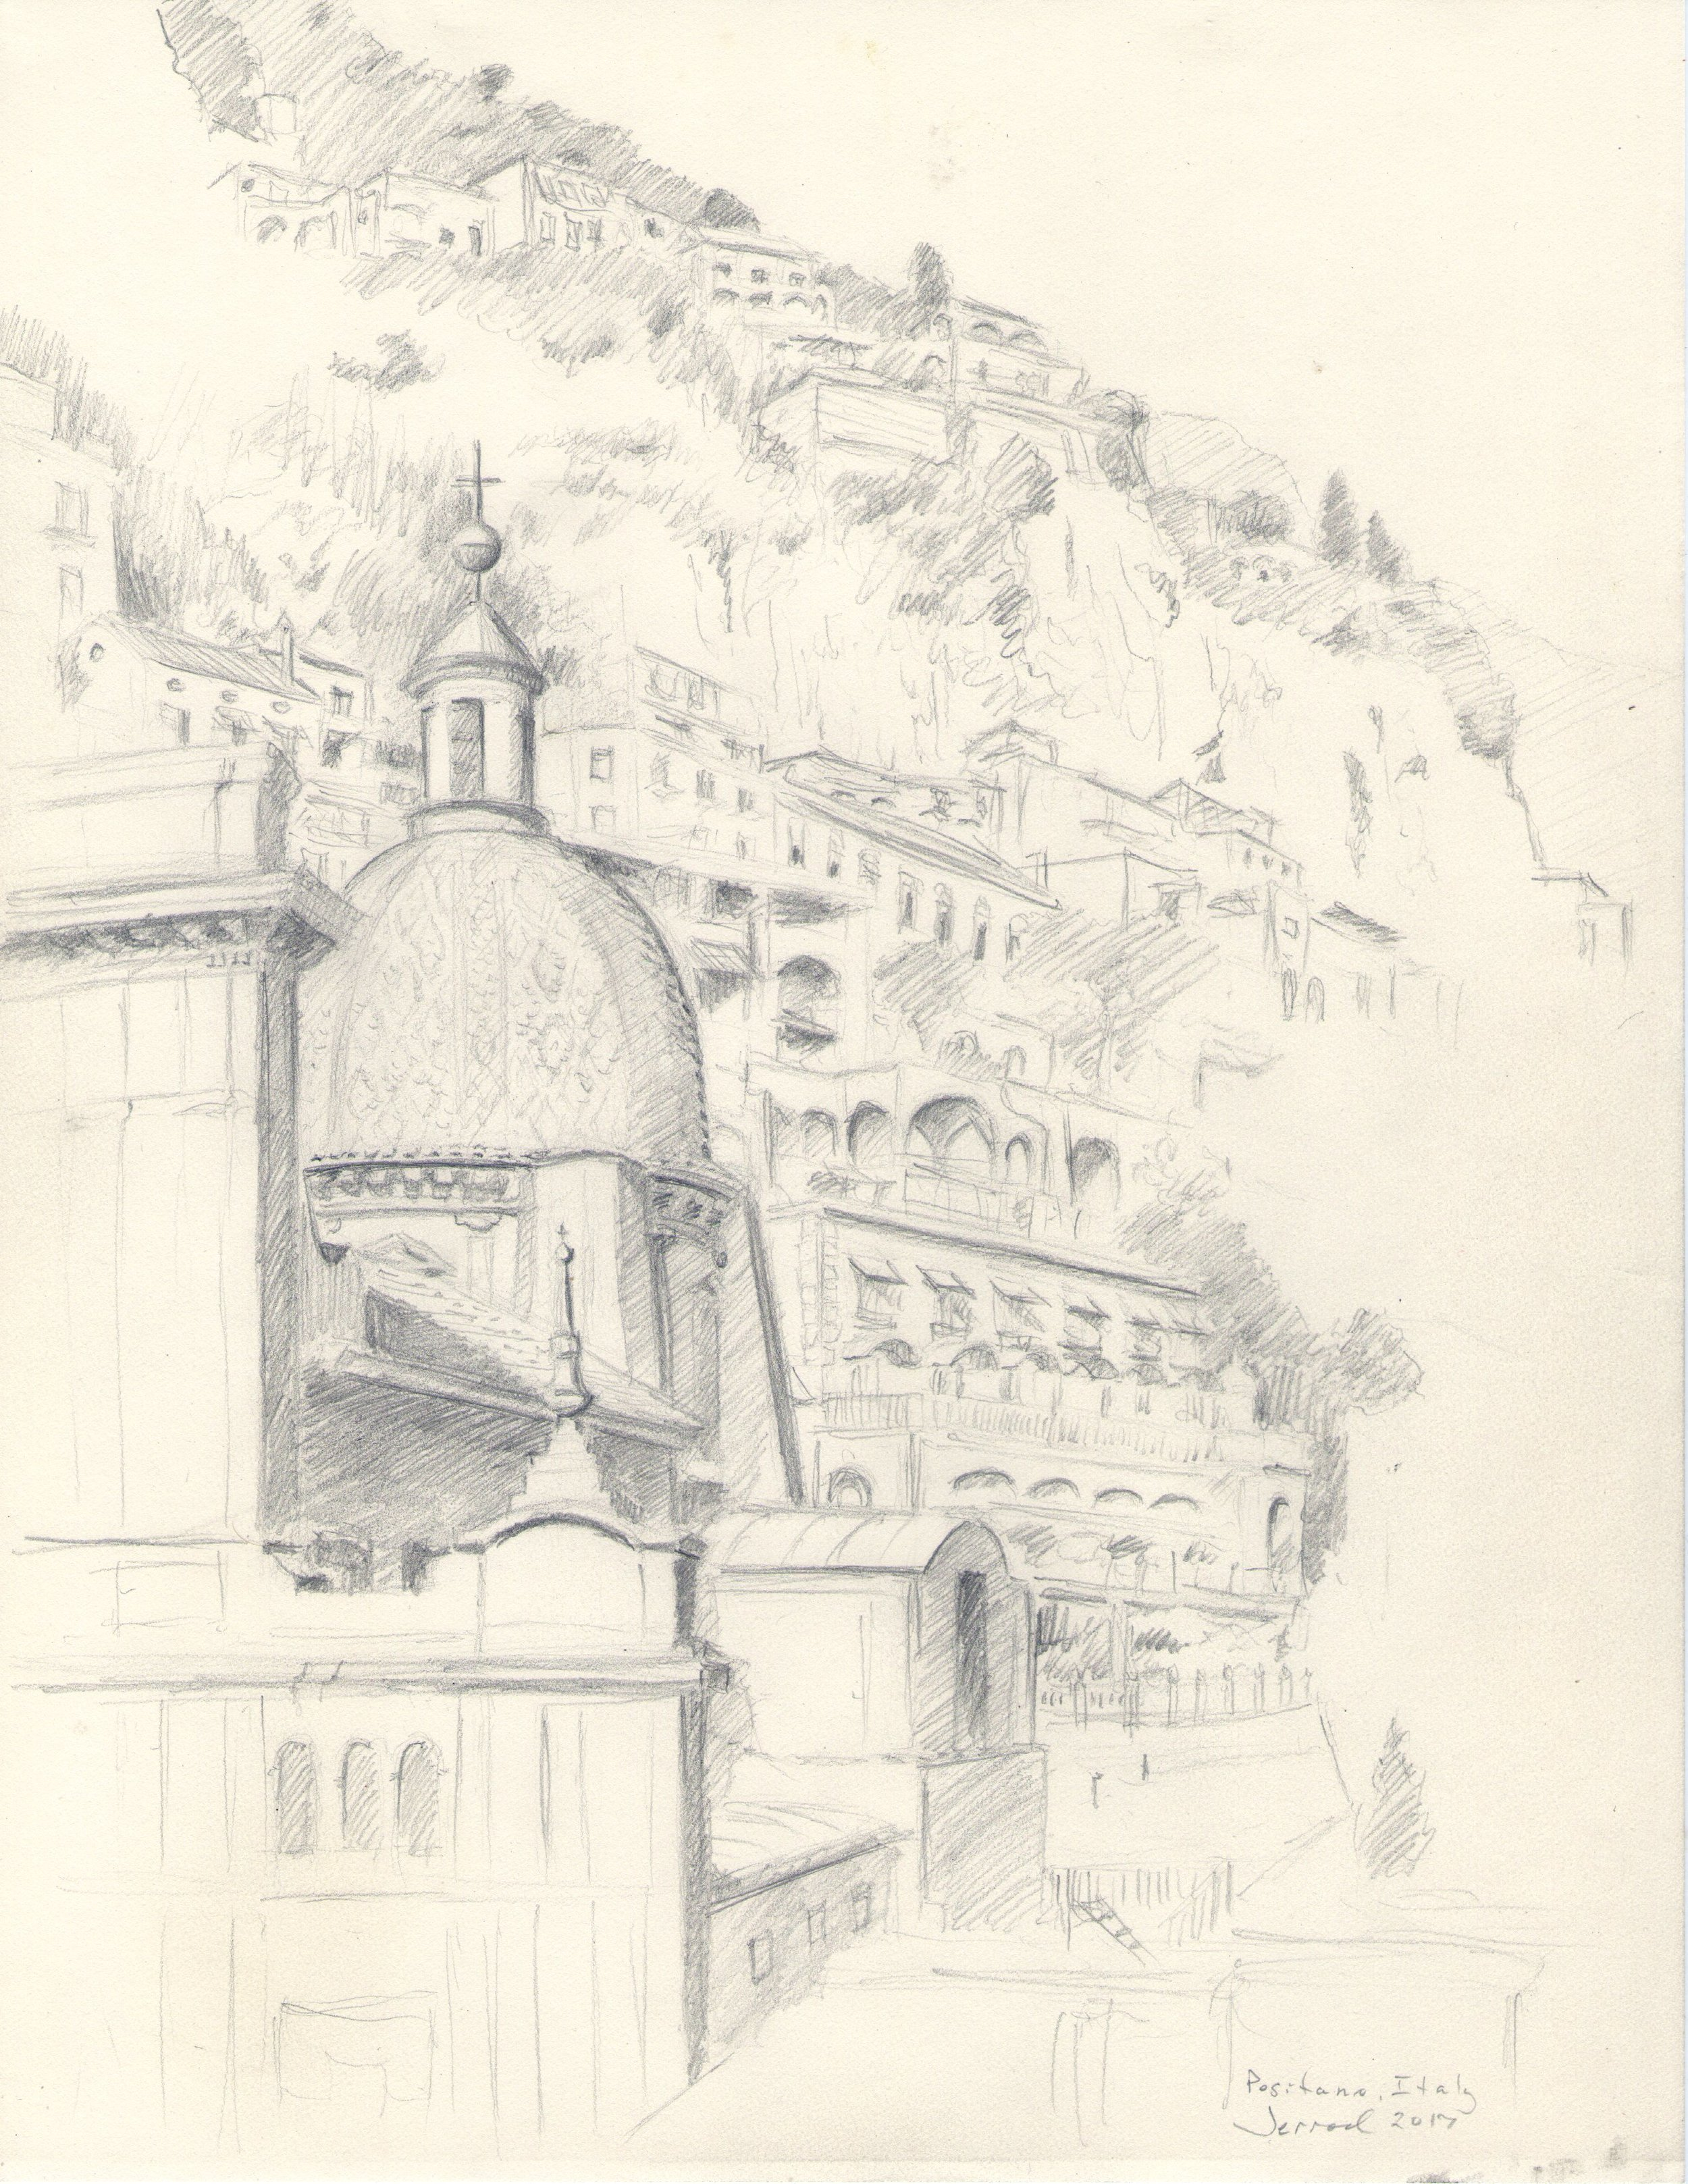 Positano drawing001.jpg